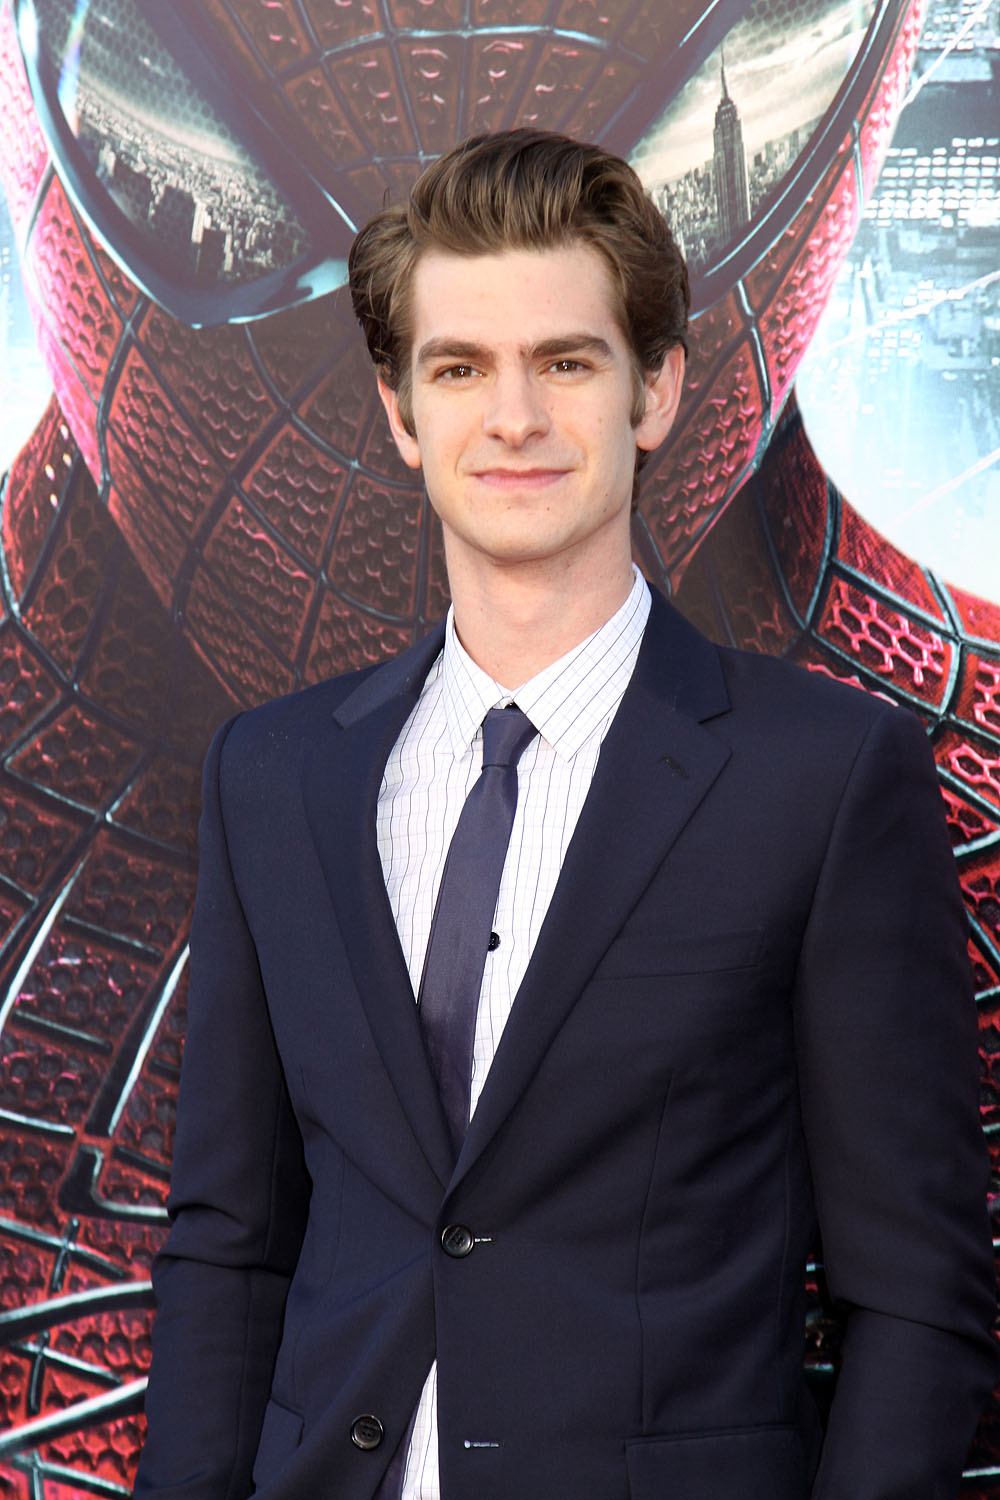 Andrew Garfield - Spider-Man Wiki - Peter Parker, Marvel ... Andrew Garfield Wiki